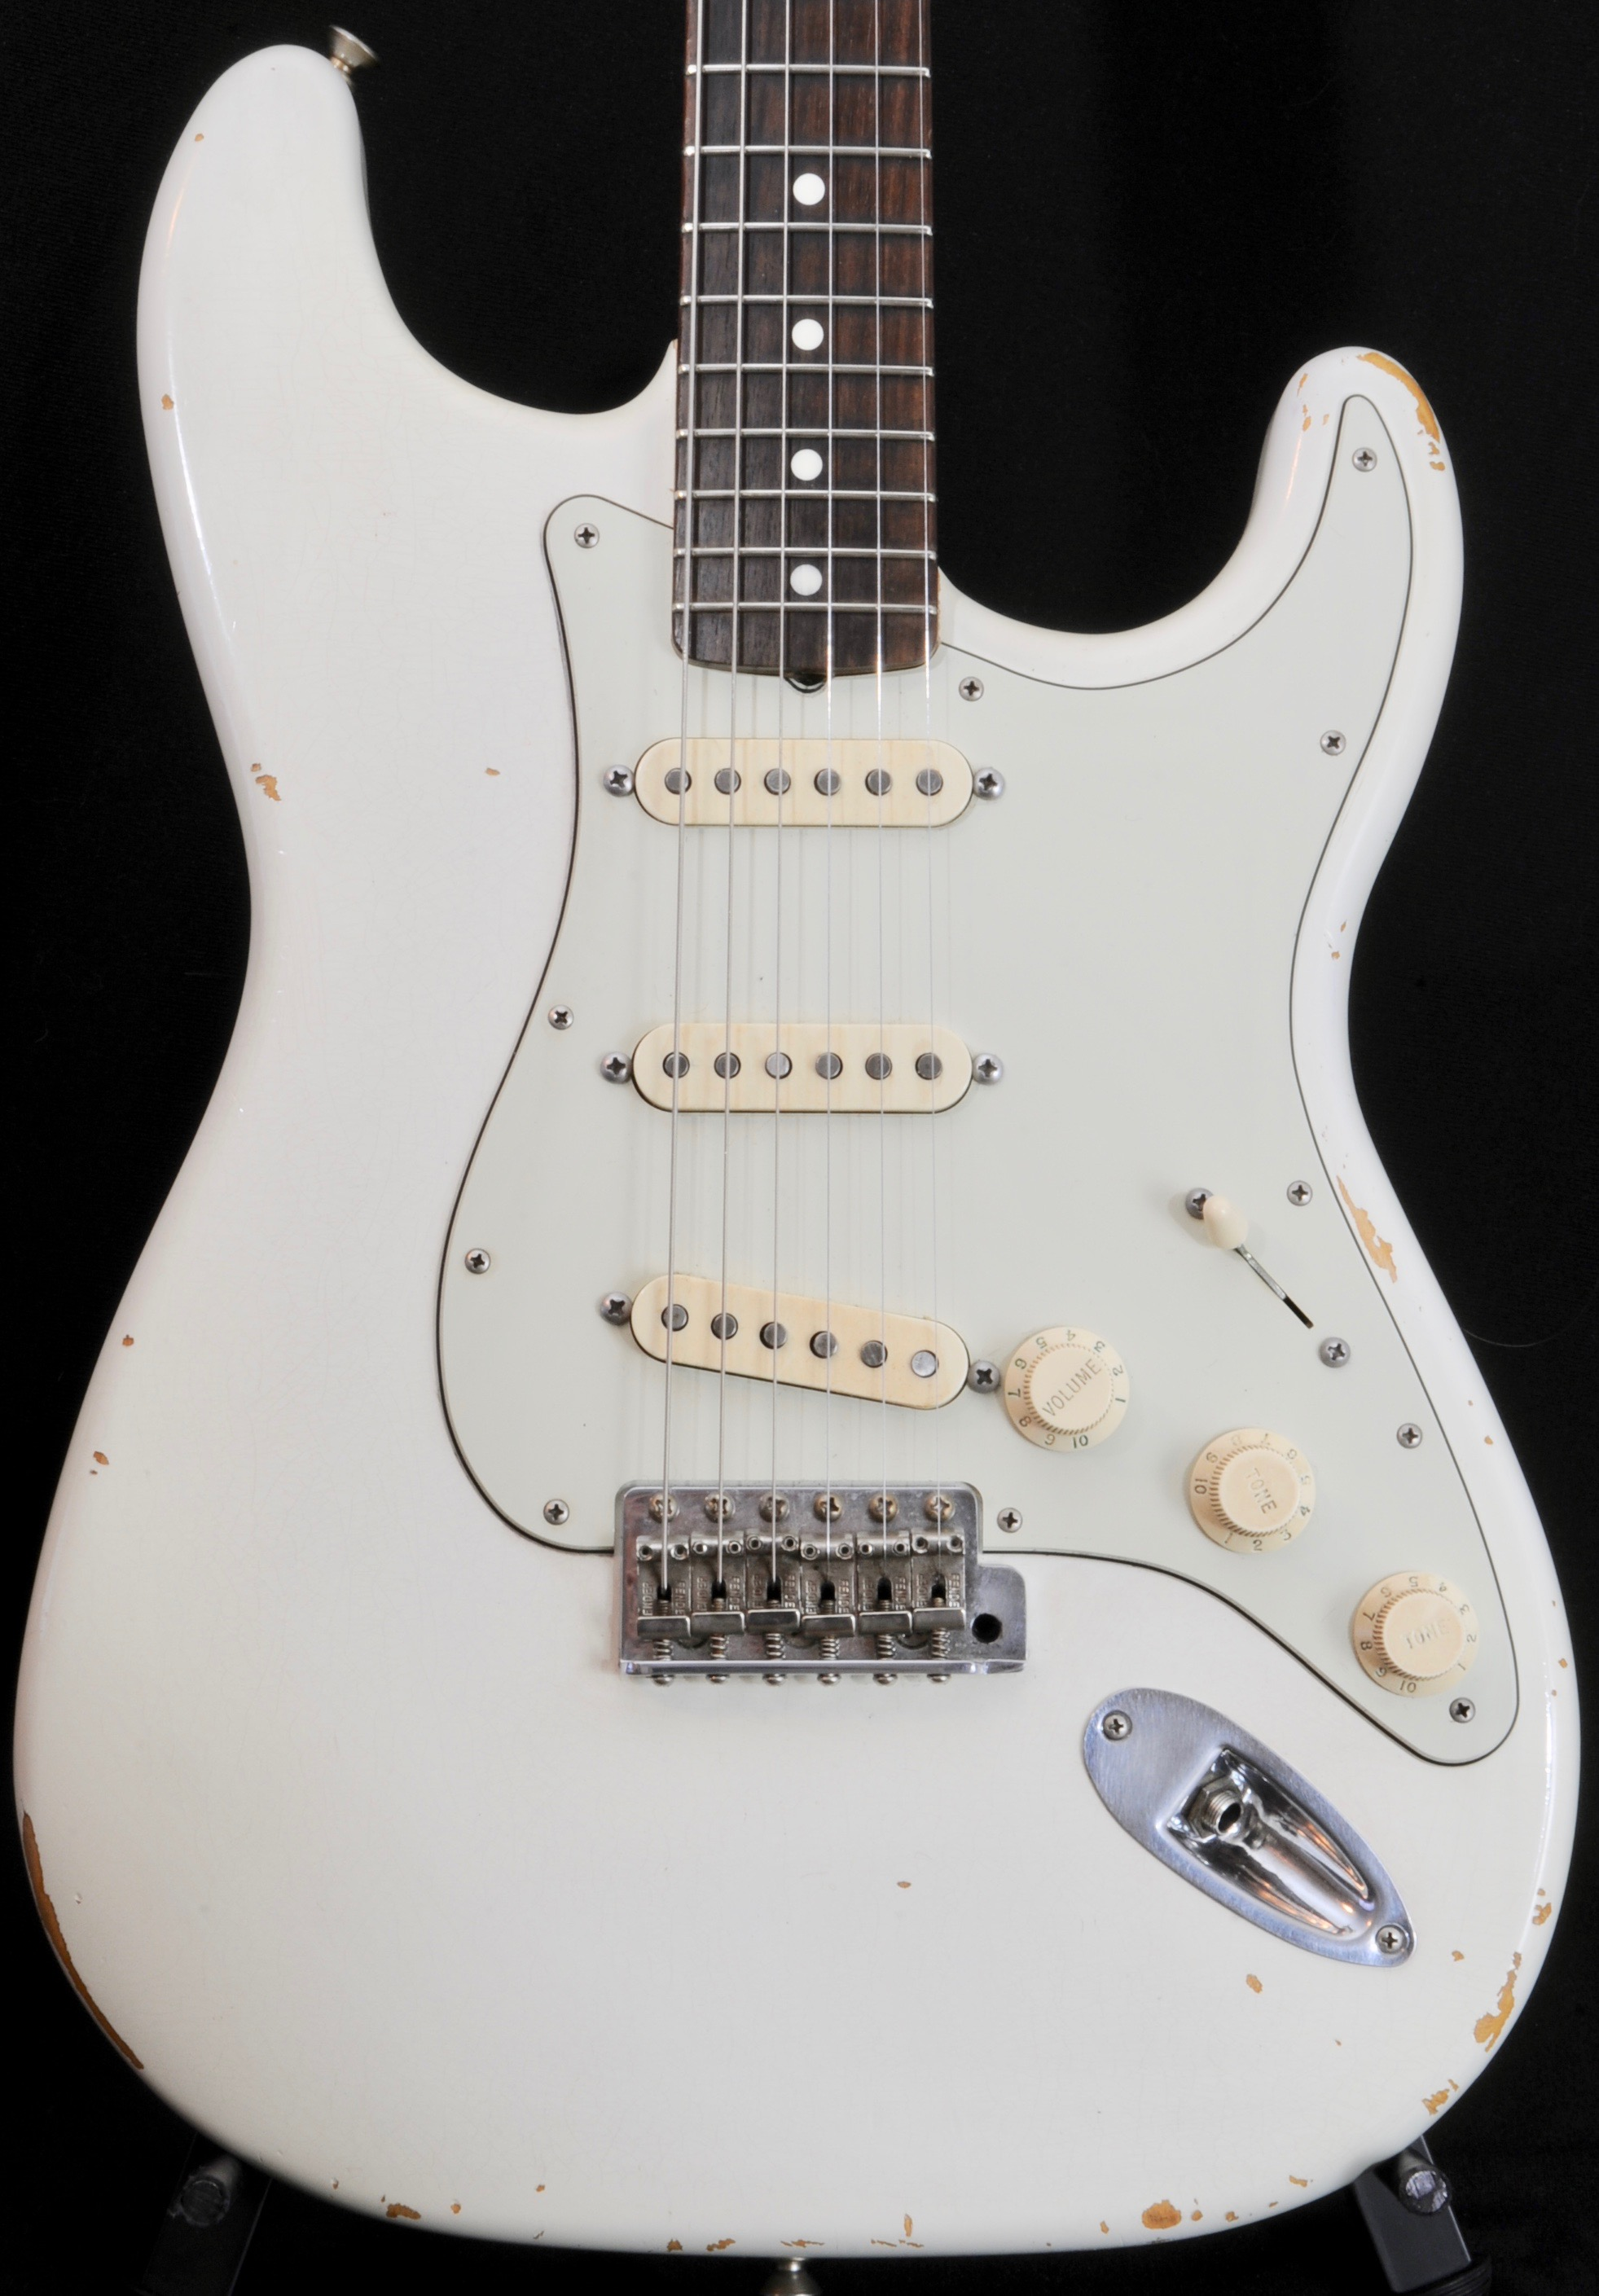 Chad Underwood Strat w RON ELLIS PICKUPS